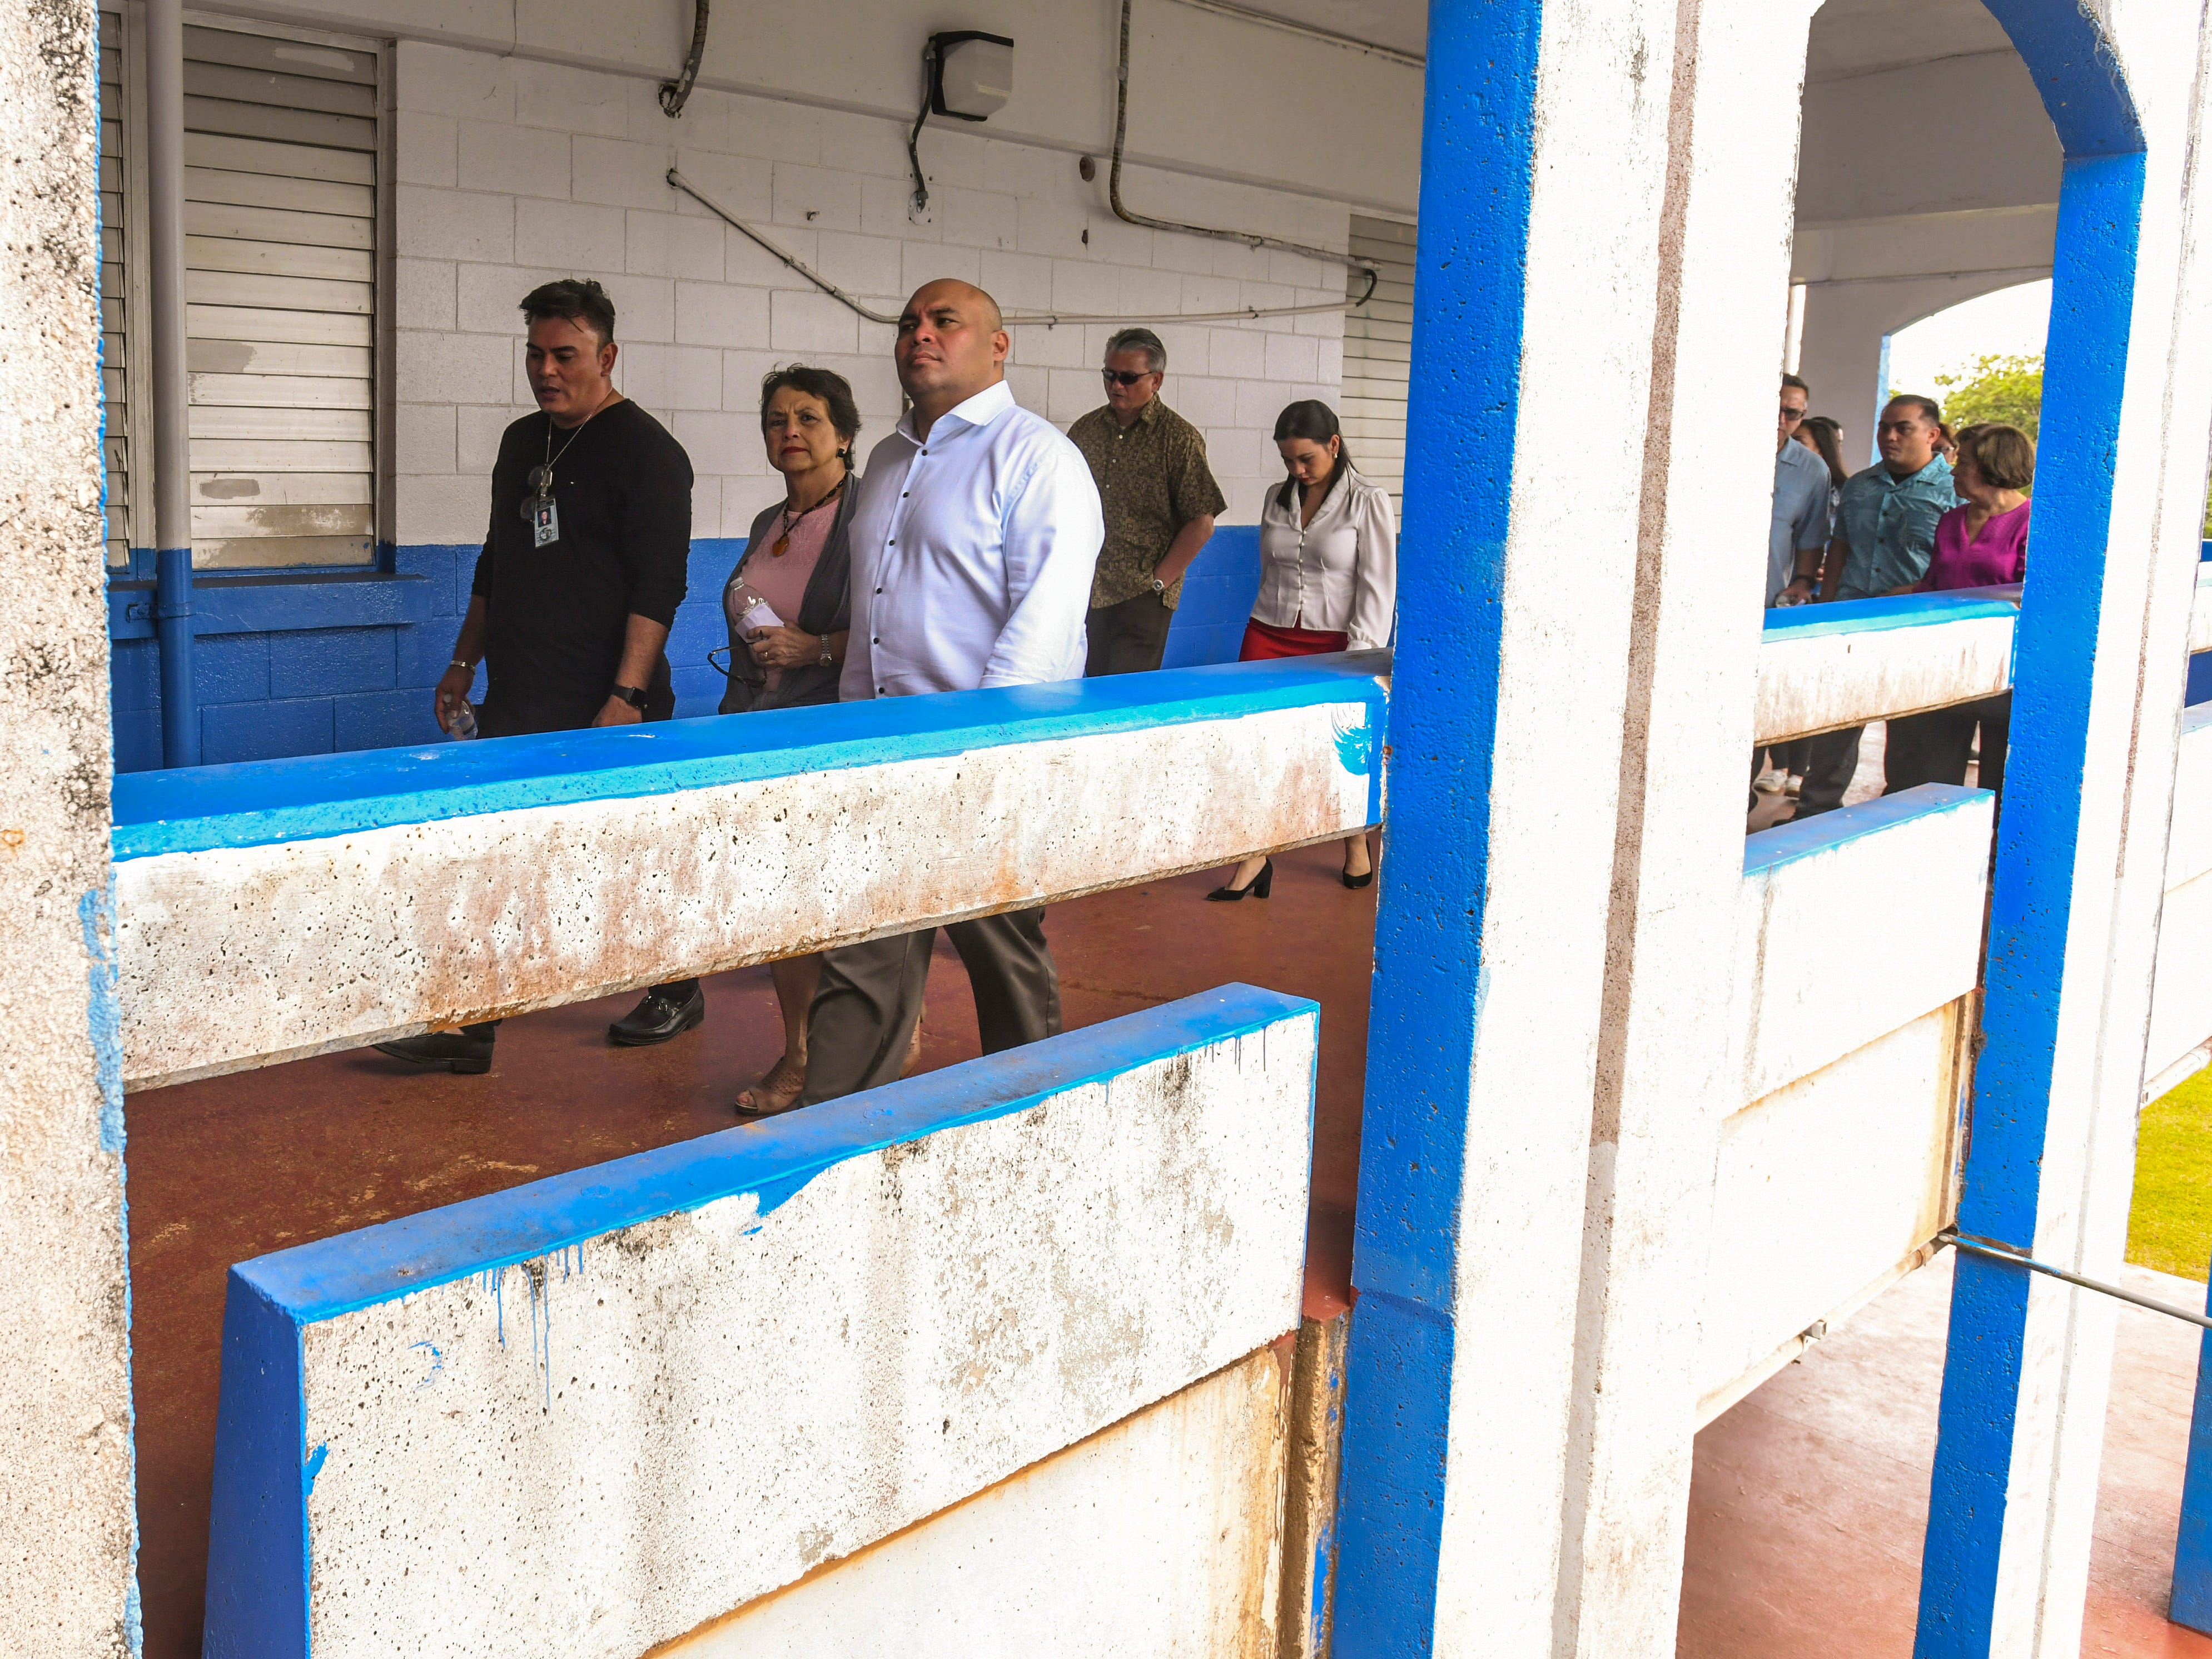 F.B. Leon Guerrero Middle School Principal Robert Martinez, right, escorts Gov. Lou Leon Guerrero, Lt. Gov. Josh Tenorio, education officials and others on a tour through the school campus in Yigo on Friday, Feb. 8, 2019.